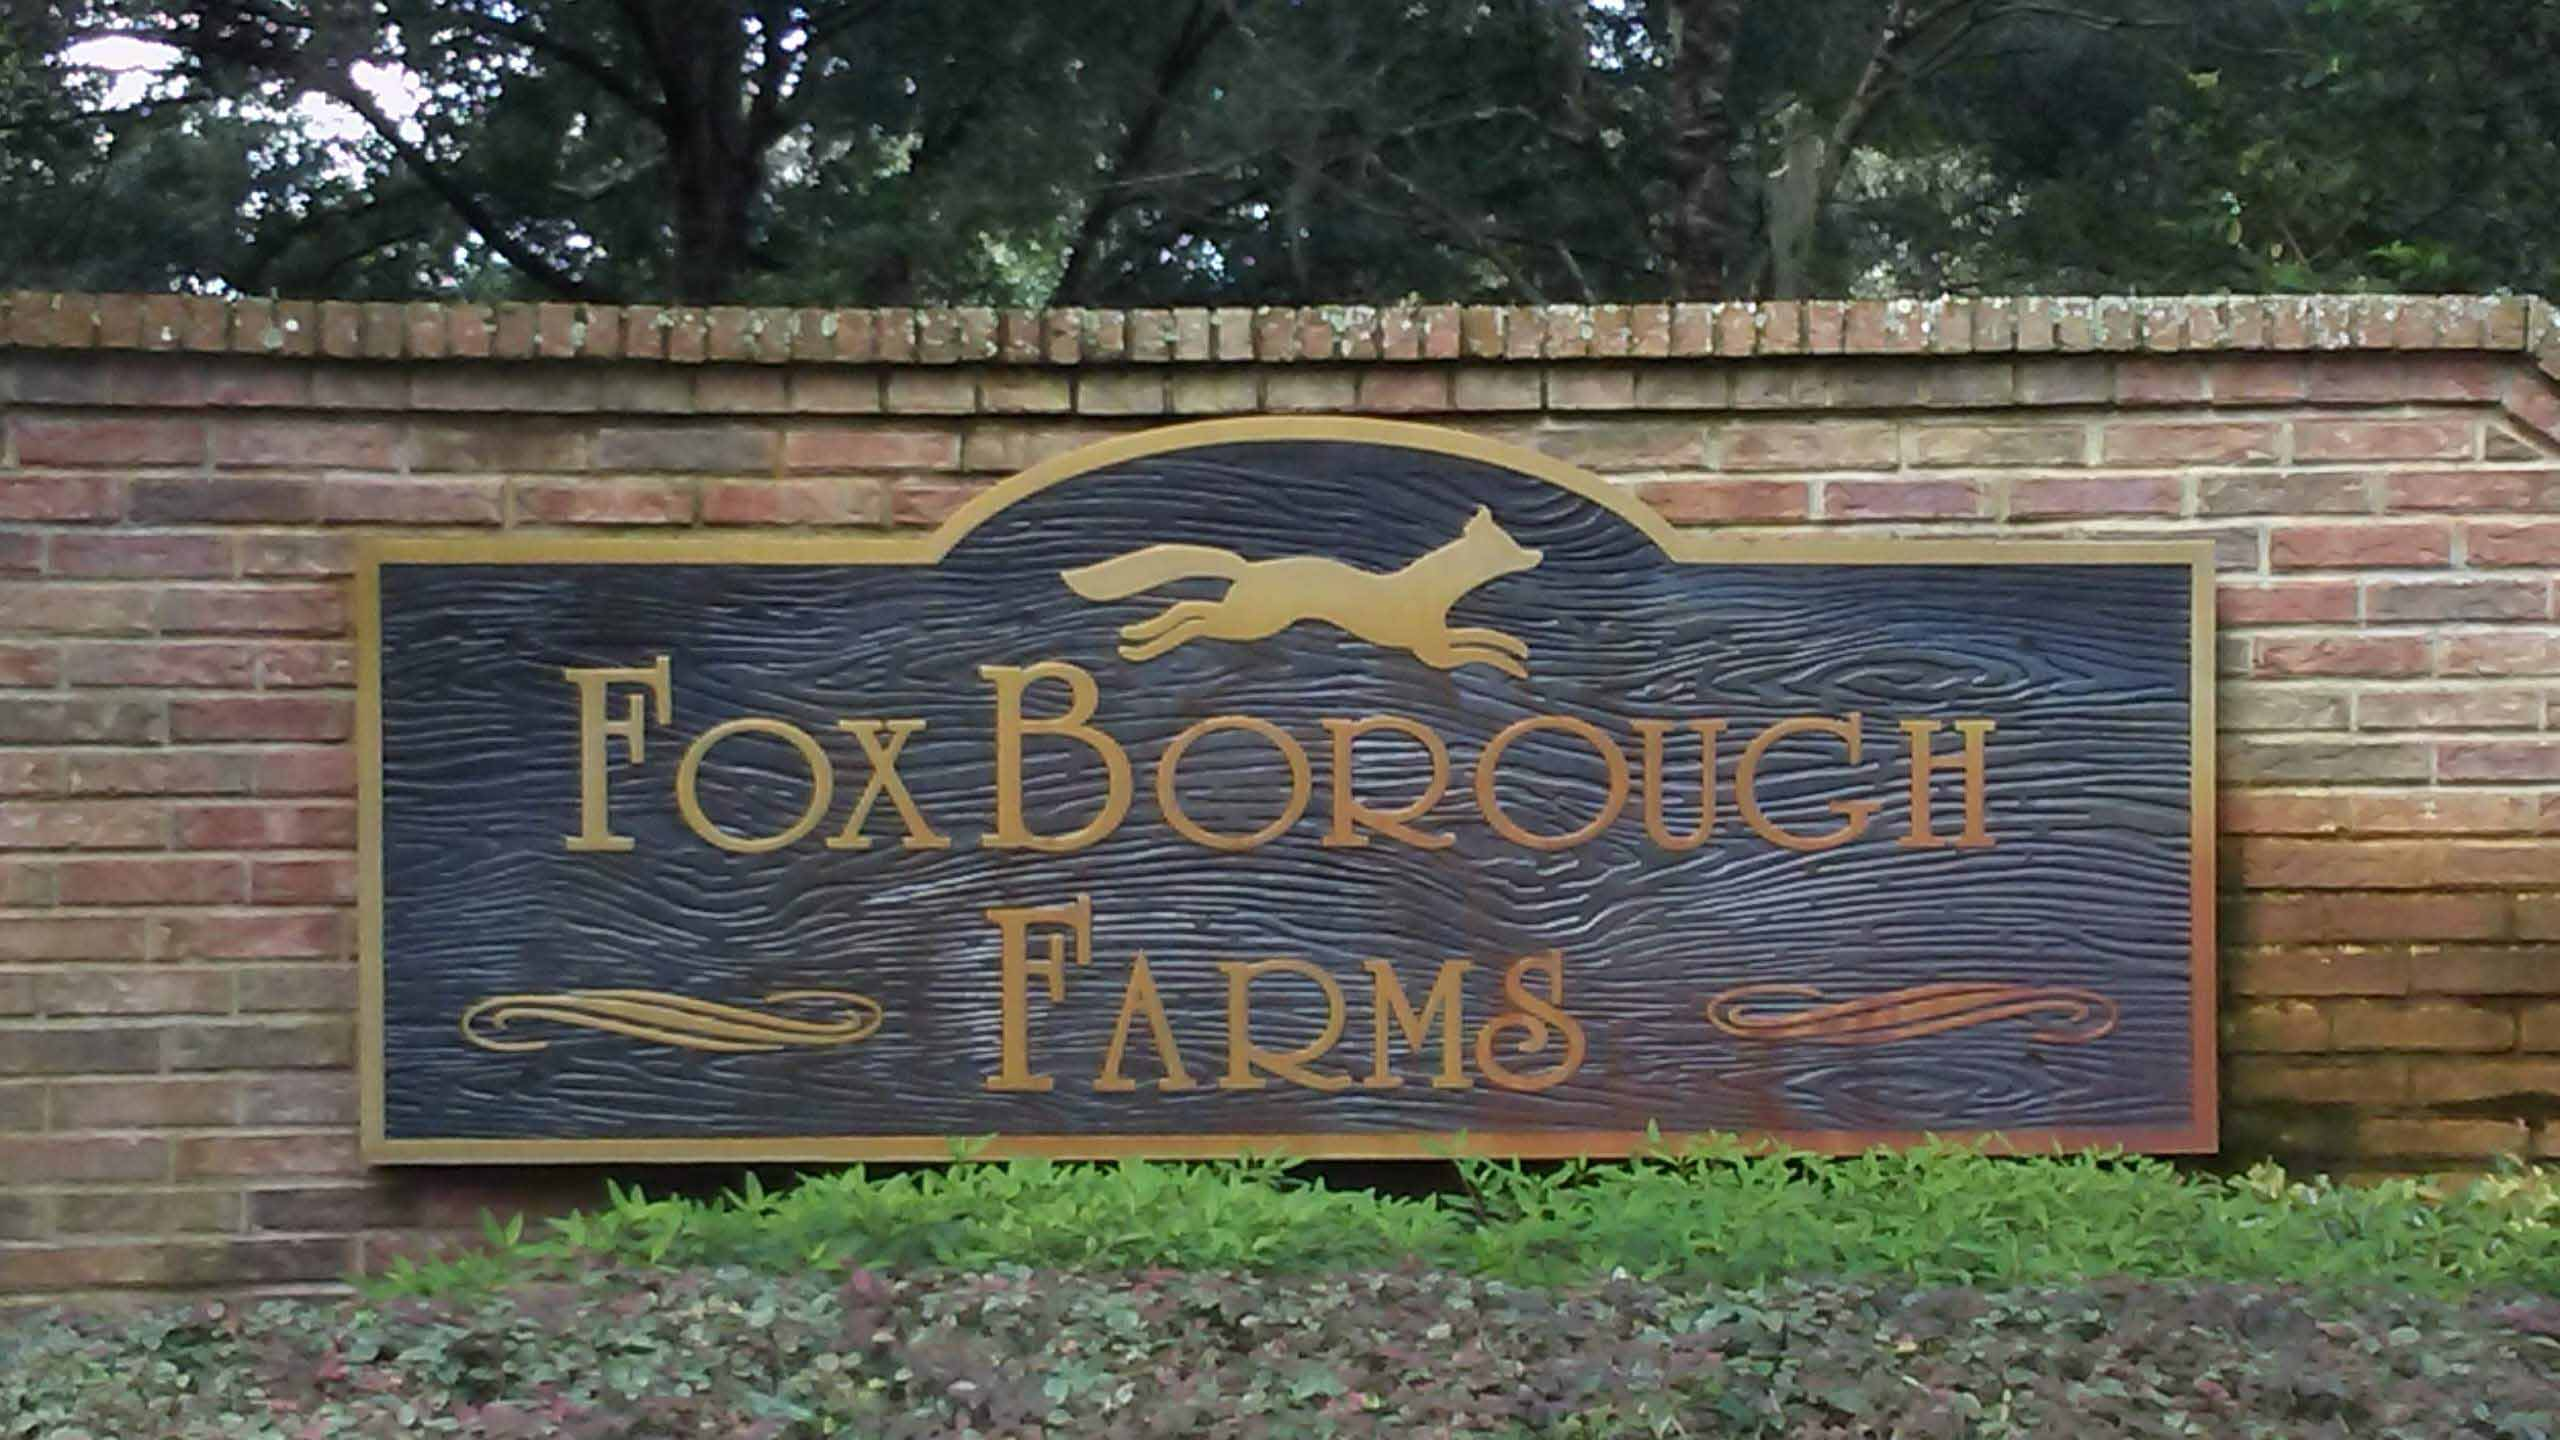 Foxborough Farms, Apopka, Florida 32712